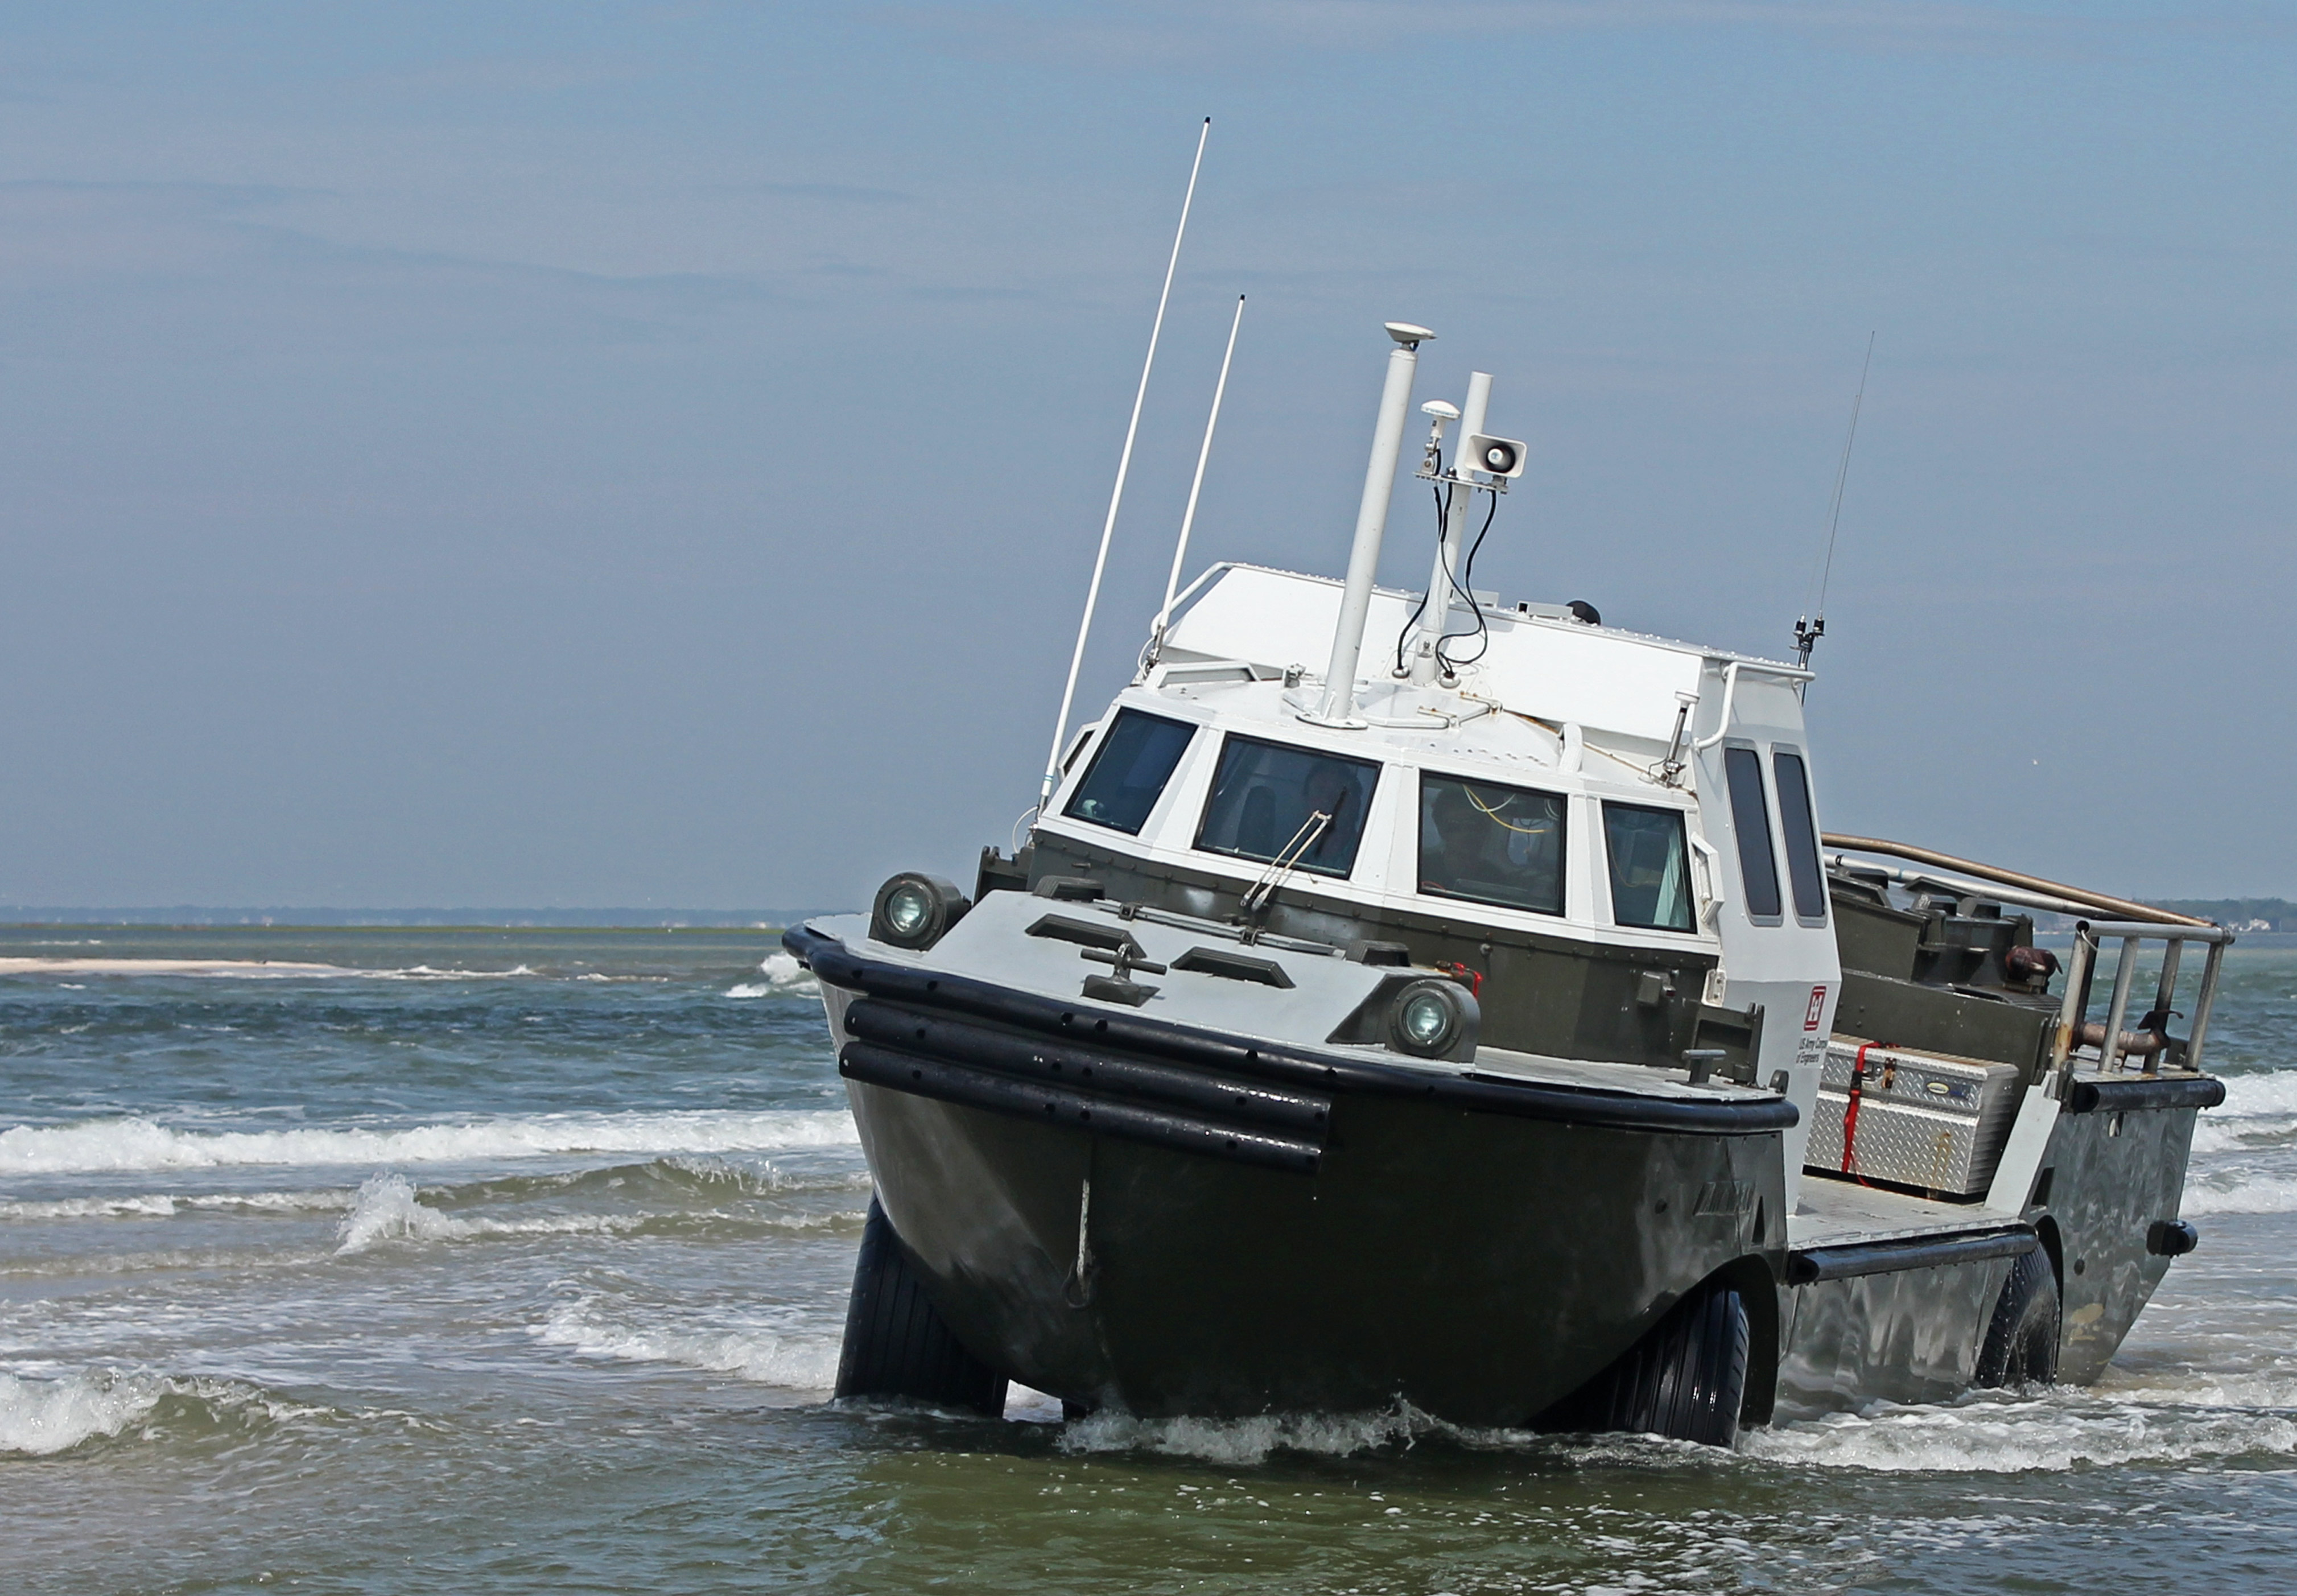 Amphibious Vehicle To Aid In Shoreline Research Fire